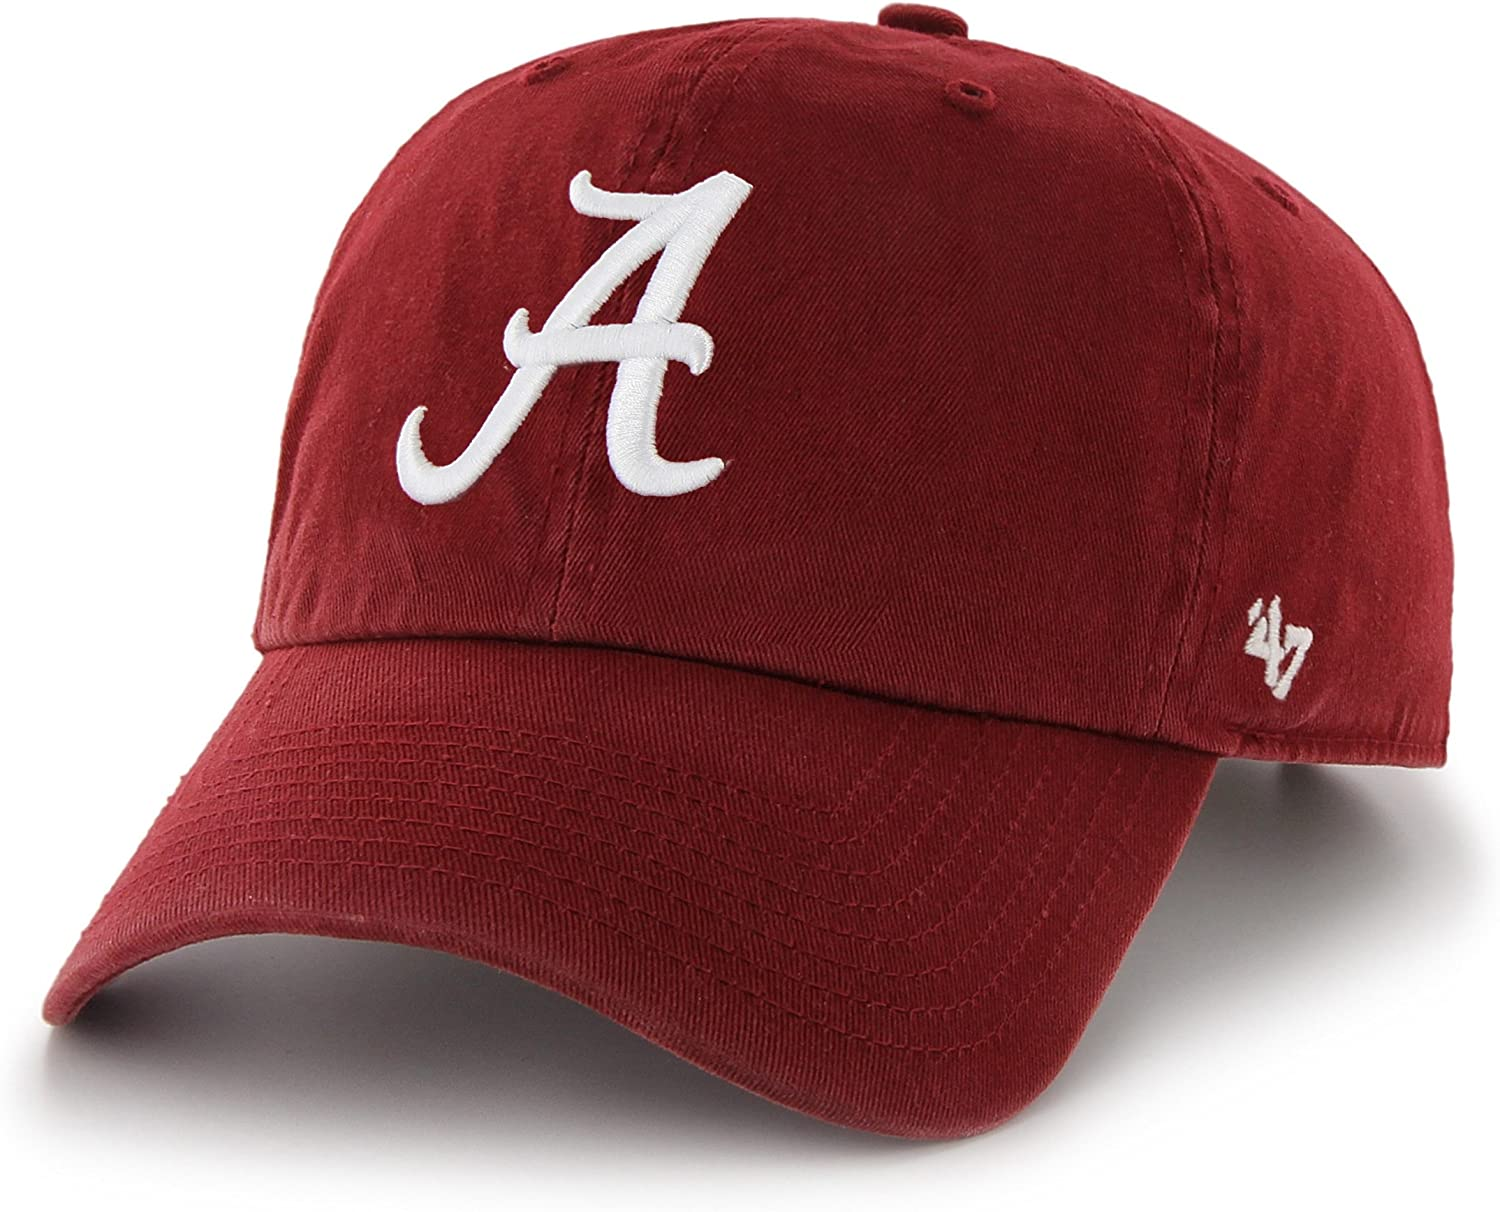 NCAA 47 Clean Up Adjustable Hat One Size Fits All